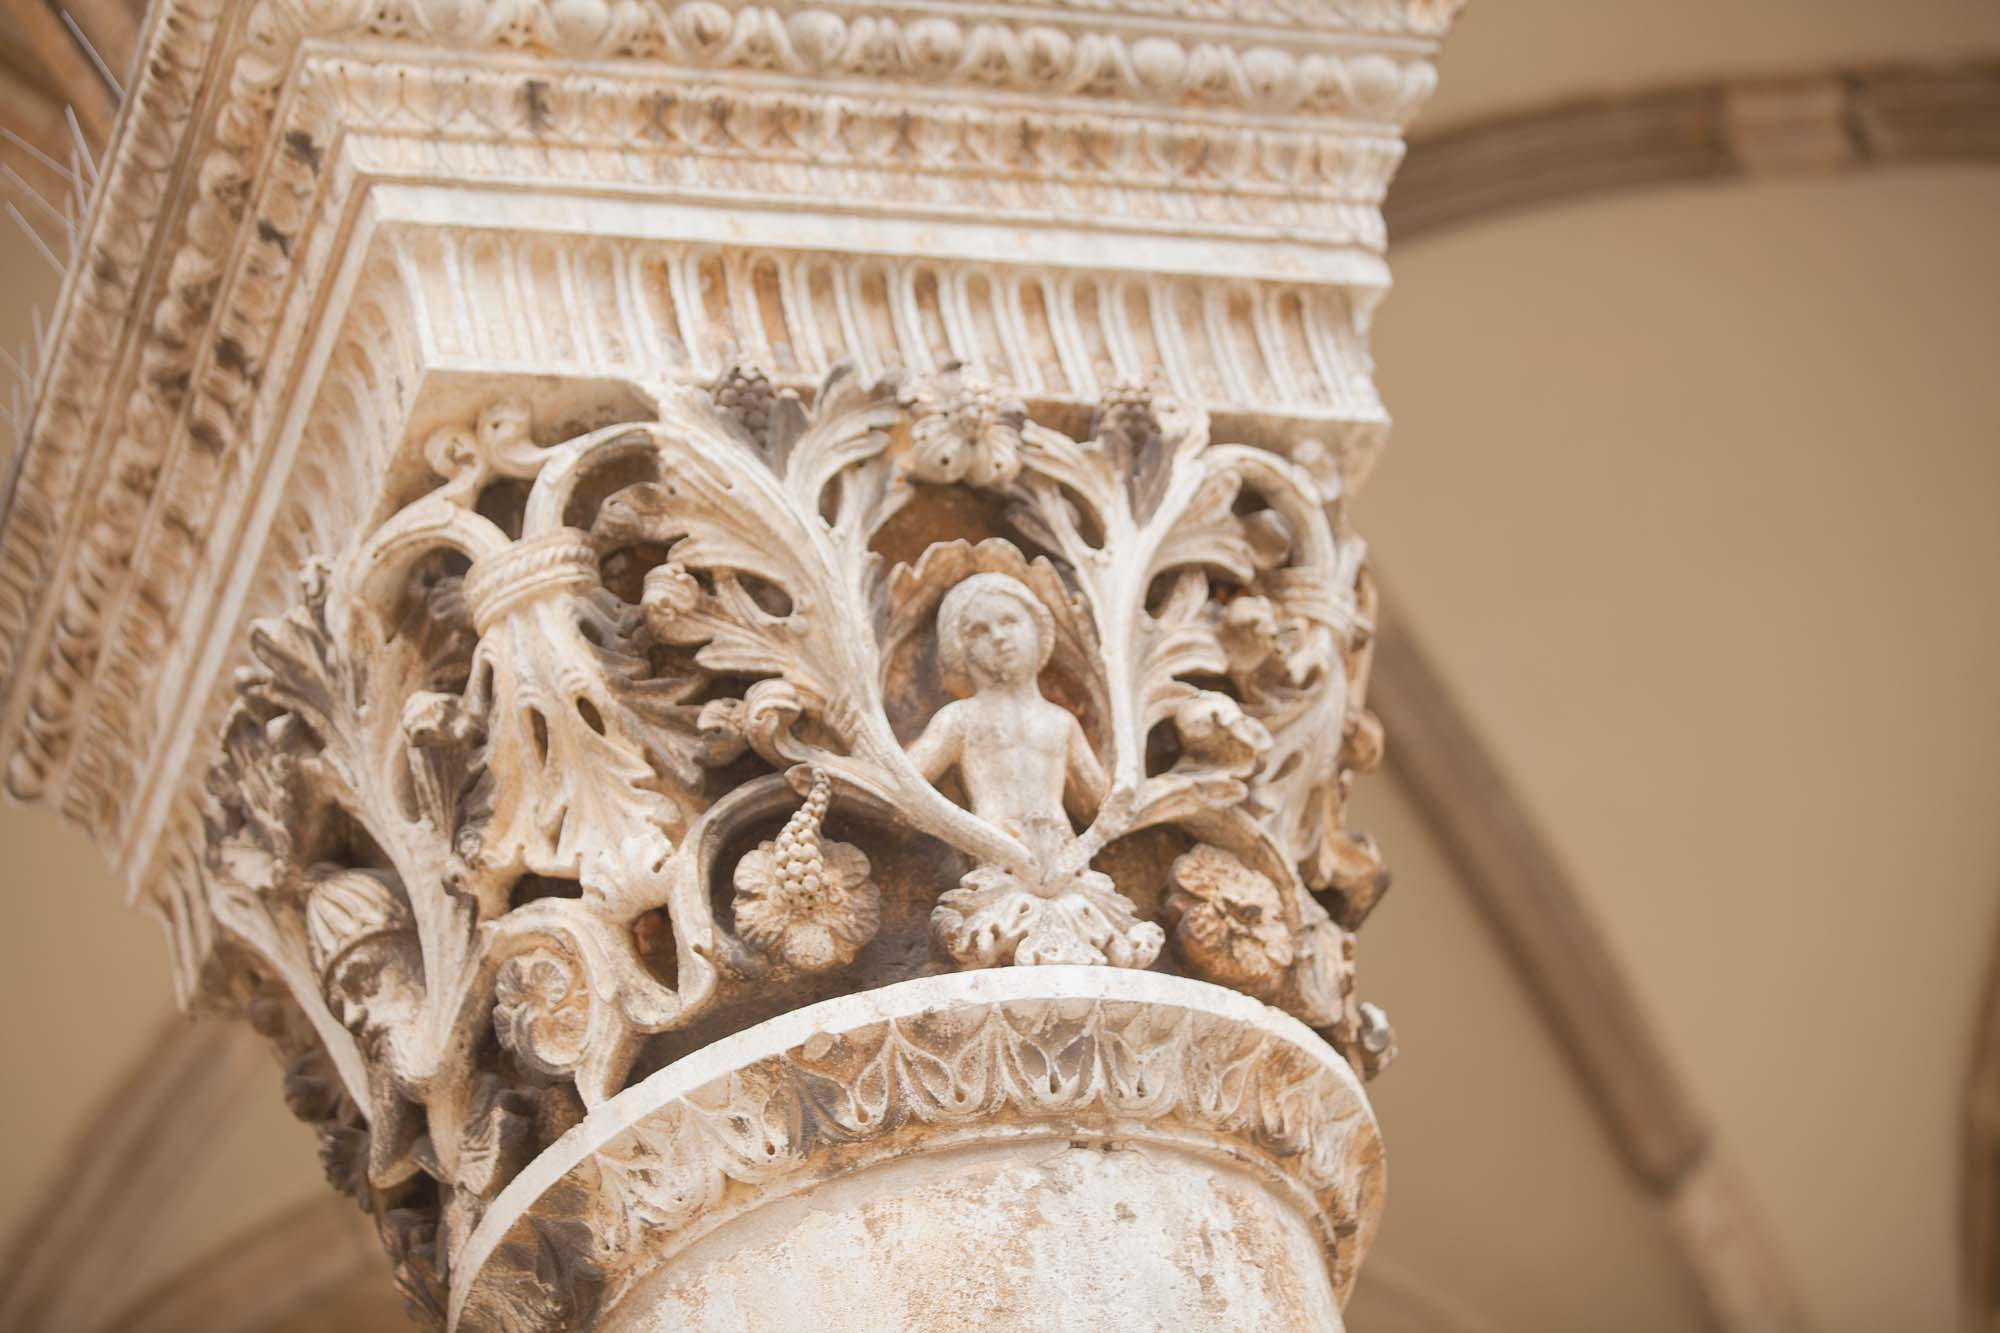 Dubrovnik pillar closeup